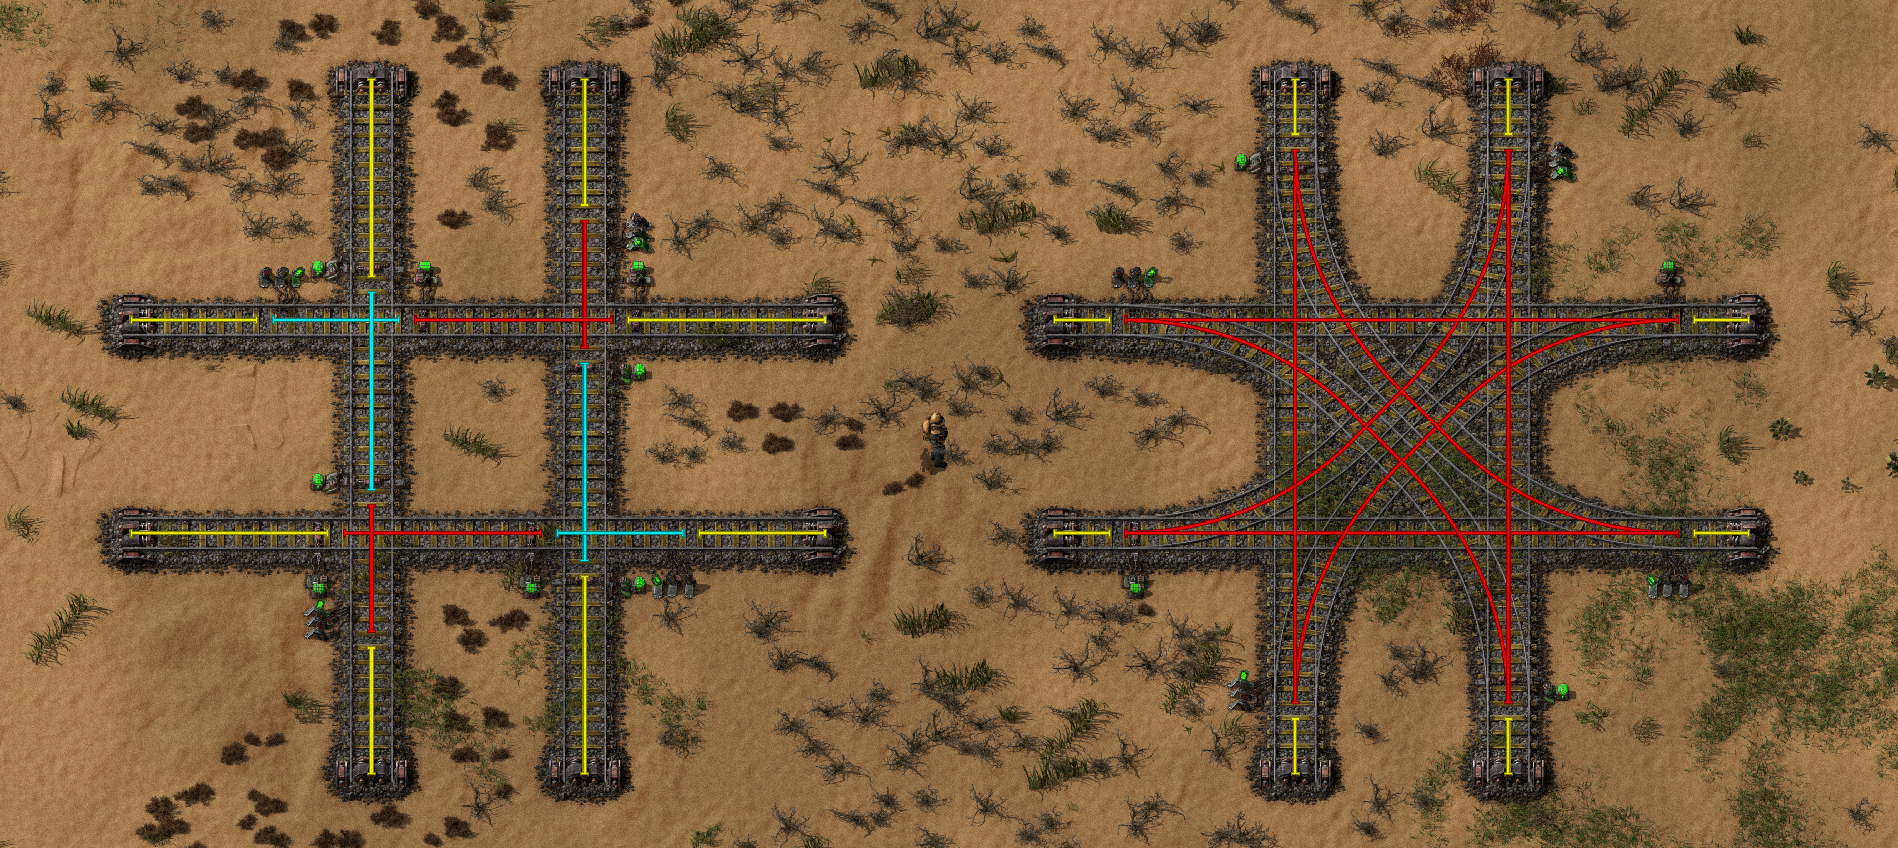 intersection_segments.png